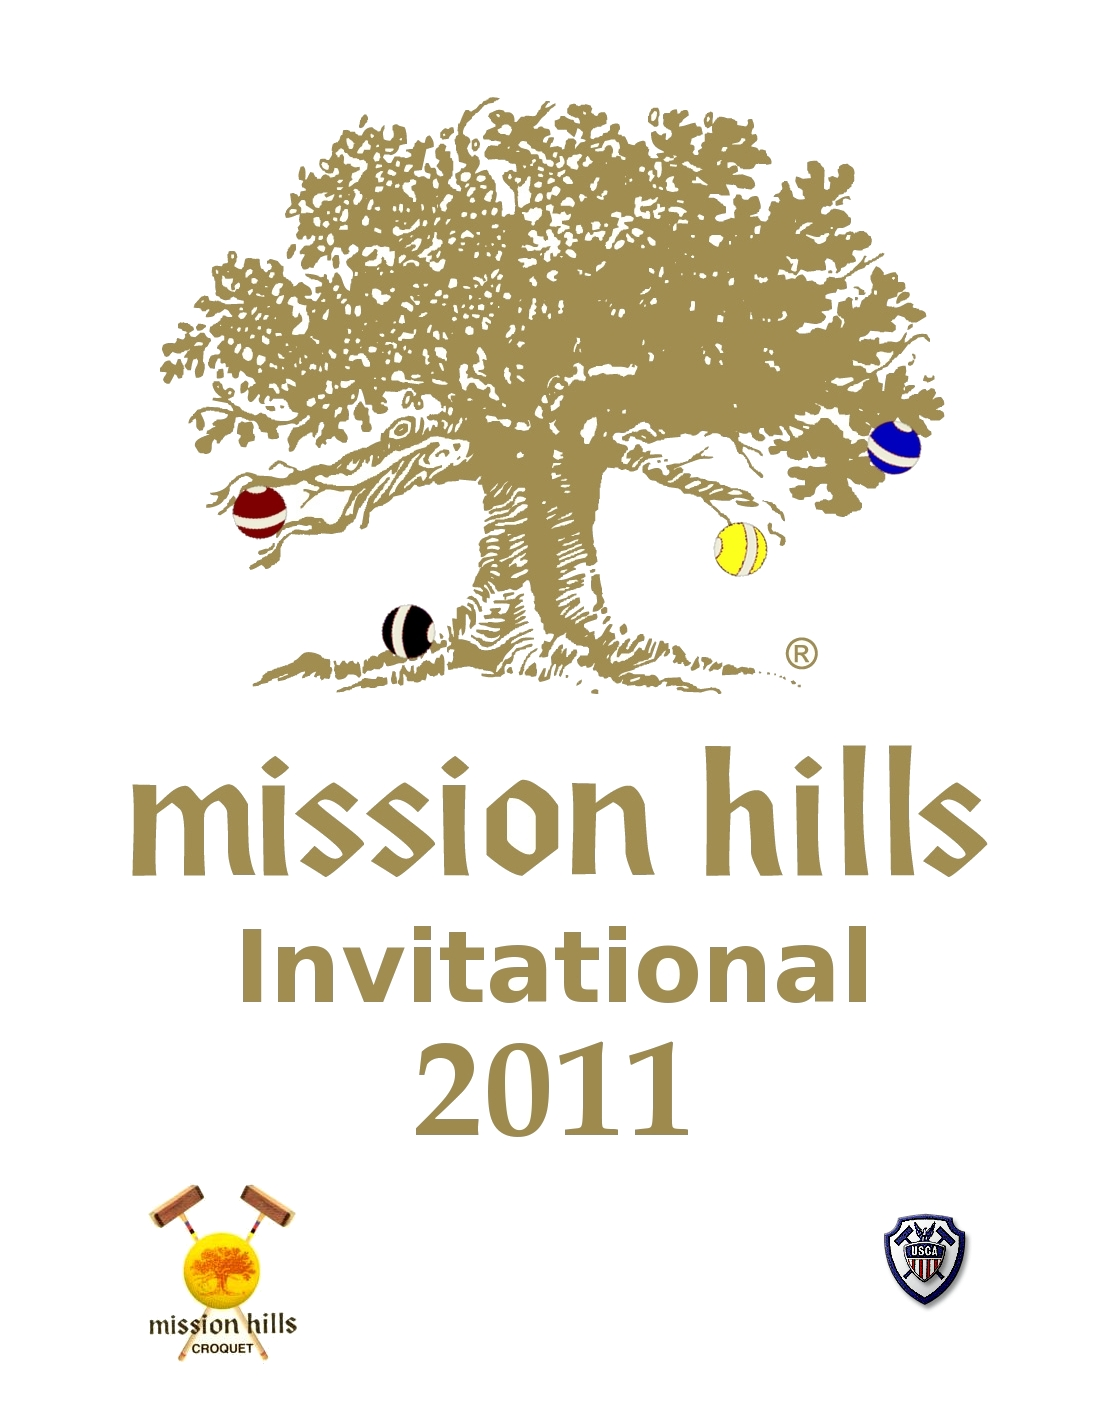 mission hills singles Personal ads for mission hills, ks are a great way to find a life partner, movie date, or a quick hookup personals are for people local to mission hills, ks and are for ages 18+ of either sex.